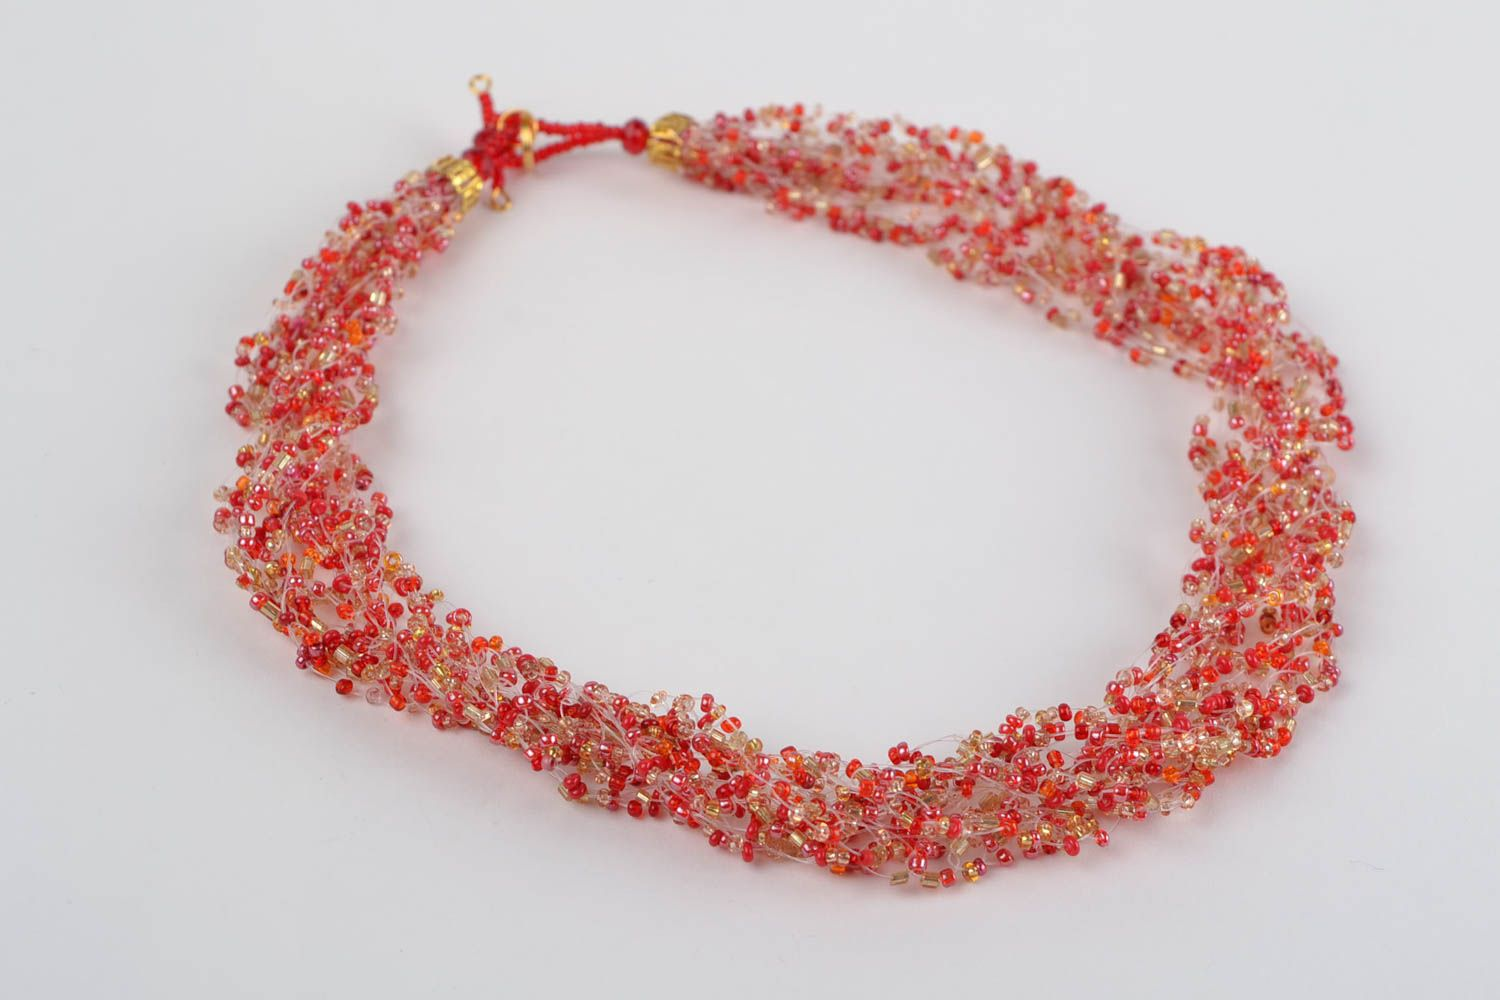 Red beaded necklace handmade designer seed beads jewelry womens accessory photo 4